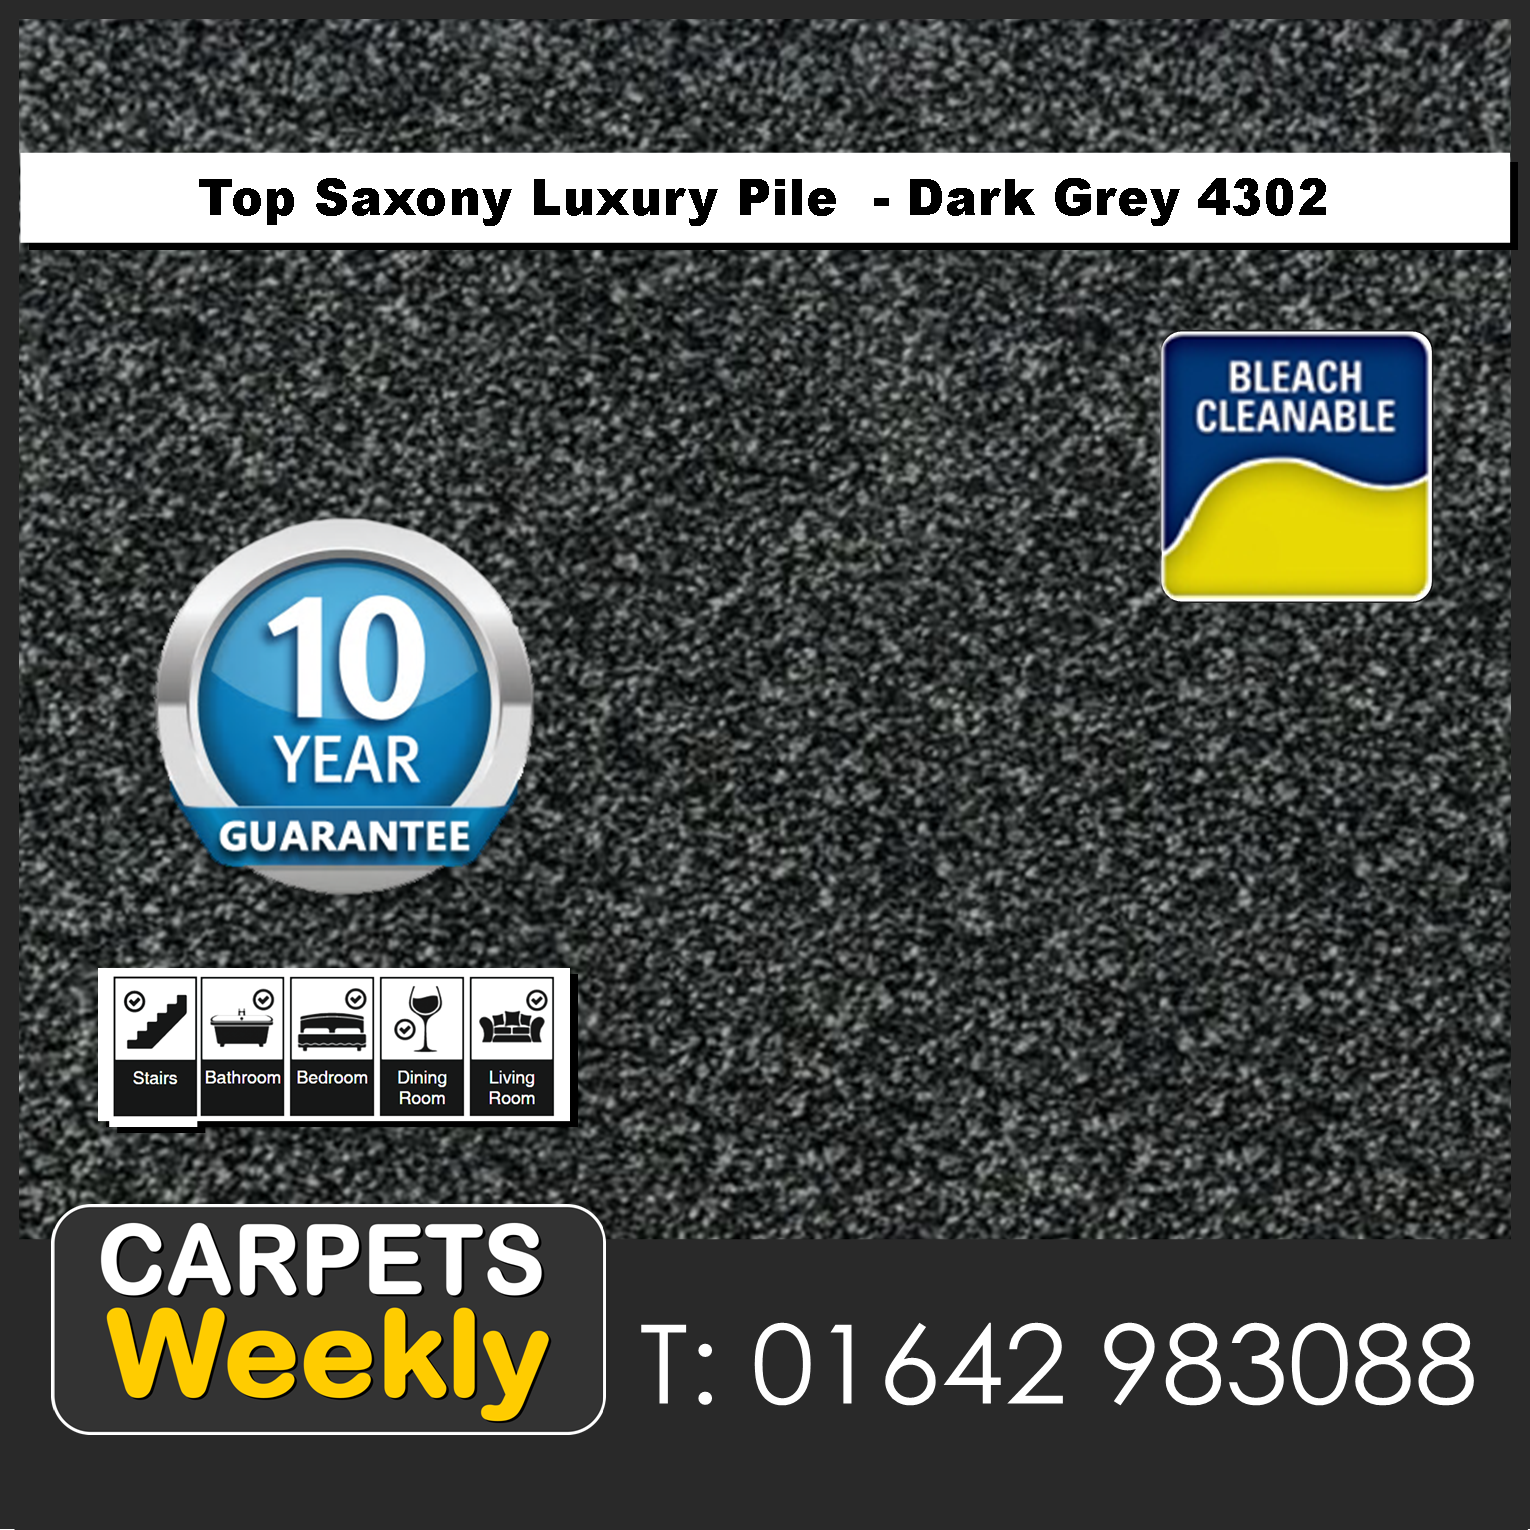 Top Saxony Dark Grey 4302 Carpet. Carpets Weekly